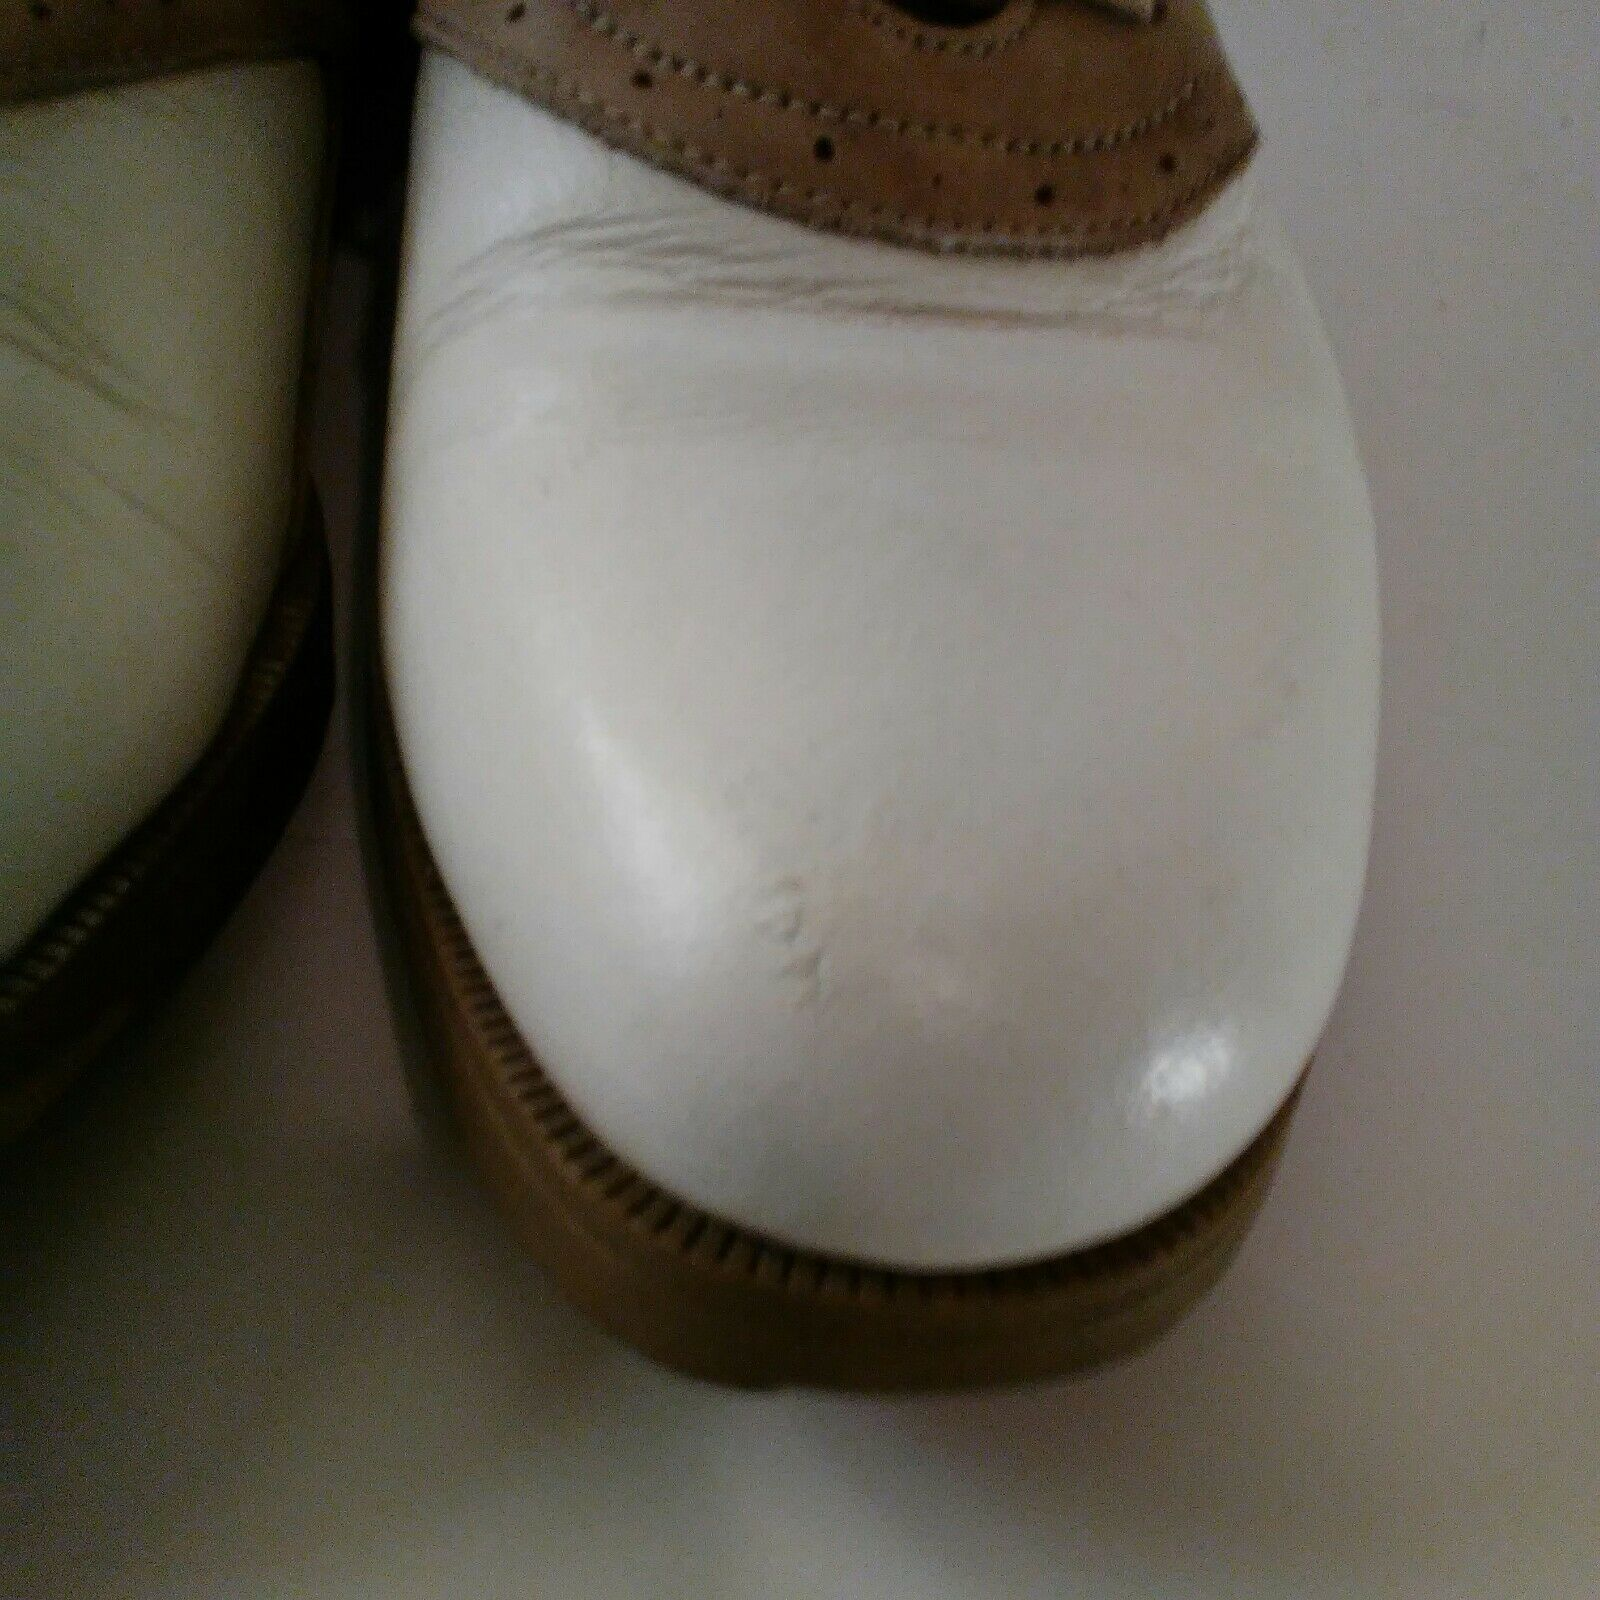 Nike Air Classic Plus White & Brown Saddle Golf Shoes Size 9 image 4